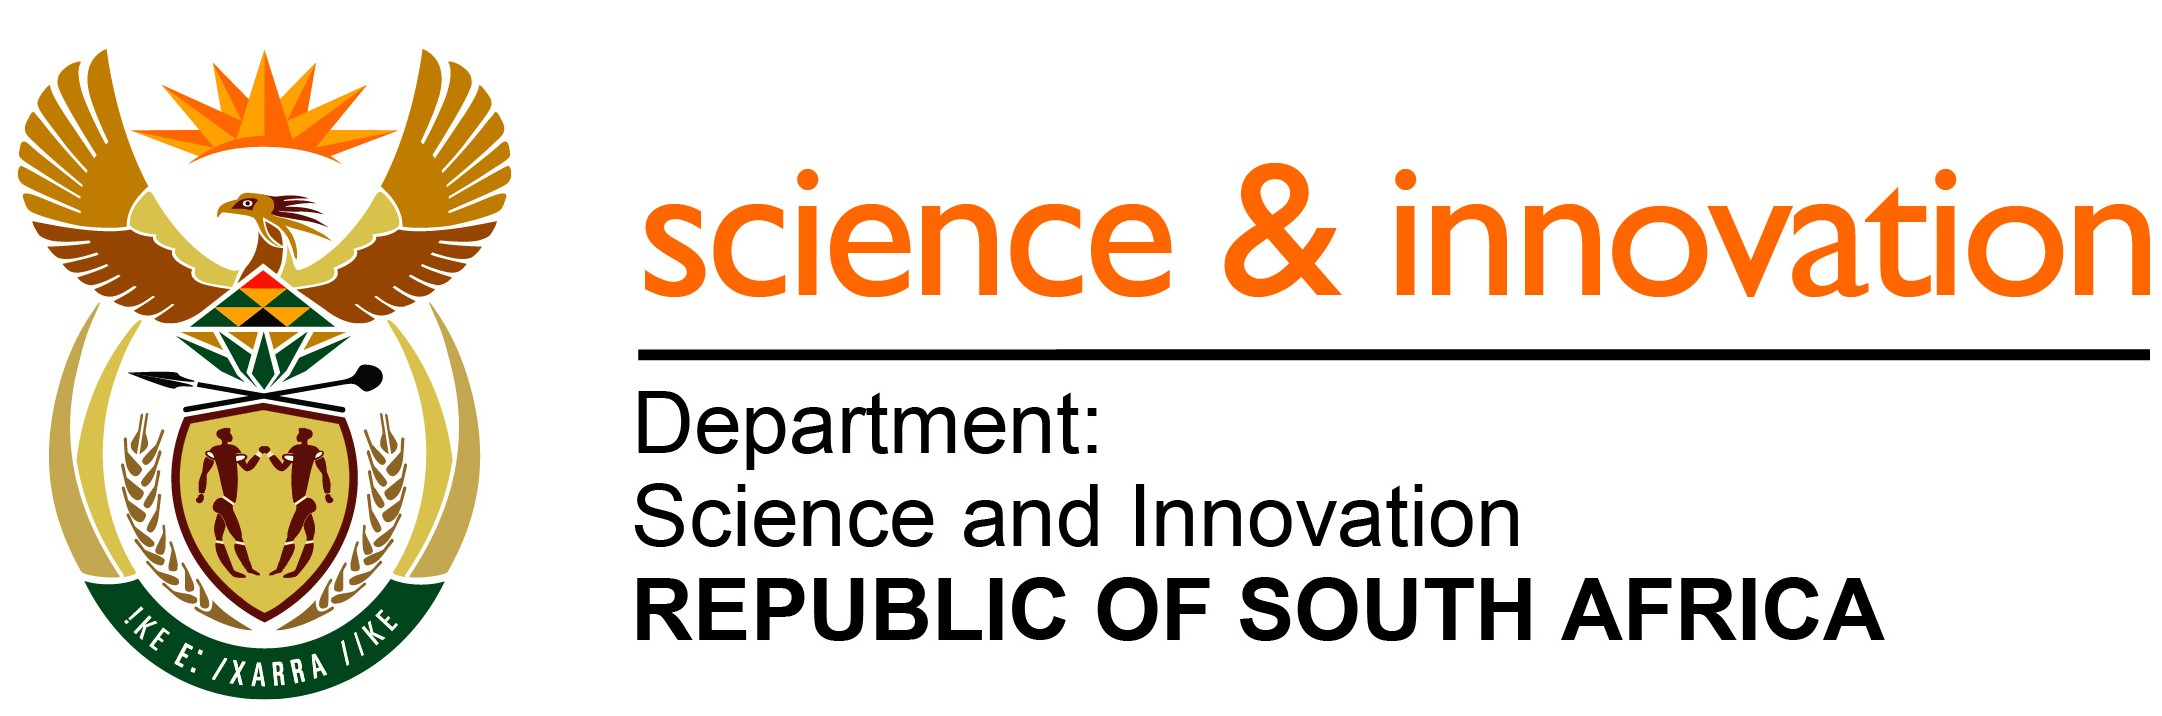 National Science Technology and Innovation Information Portal